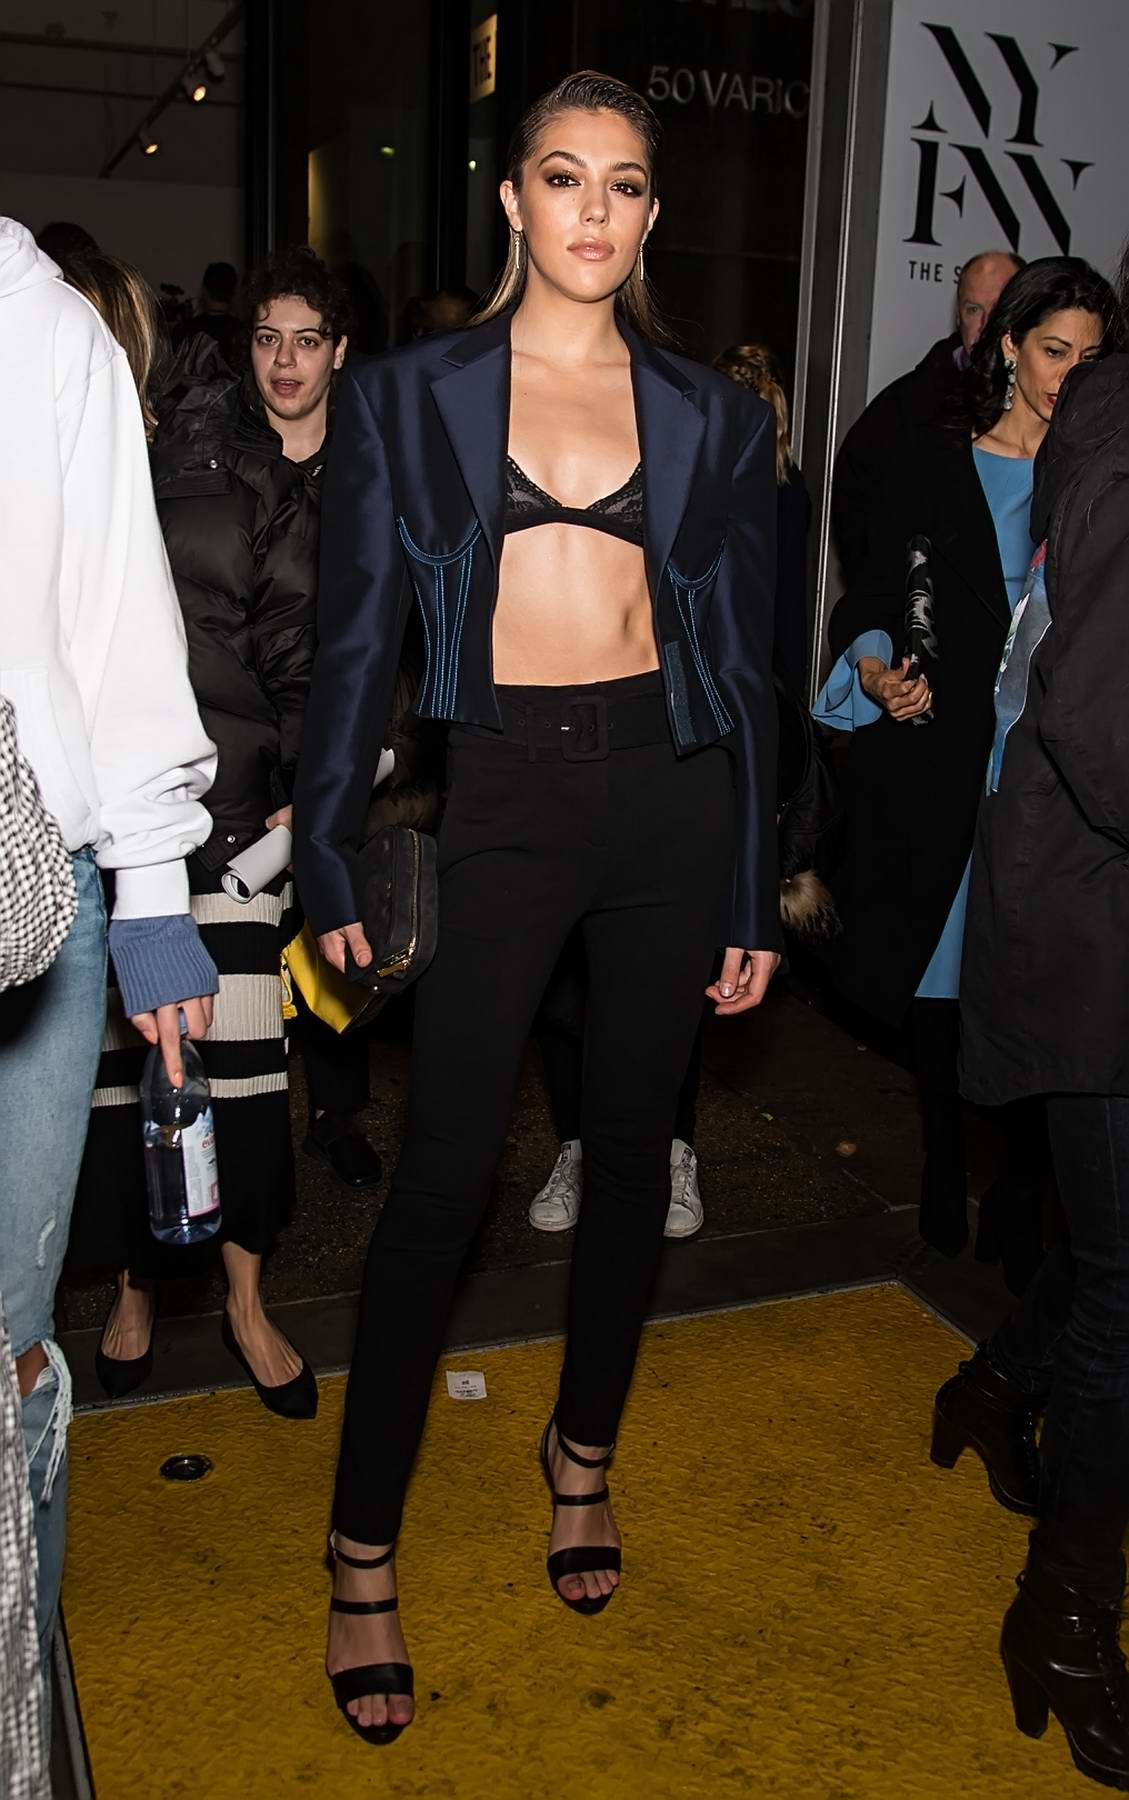 Sistine Stallone leaving Prabal Gurung Show during New York Fashion Week in New York City